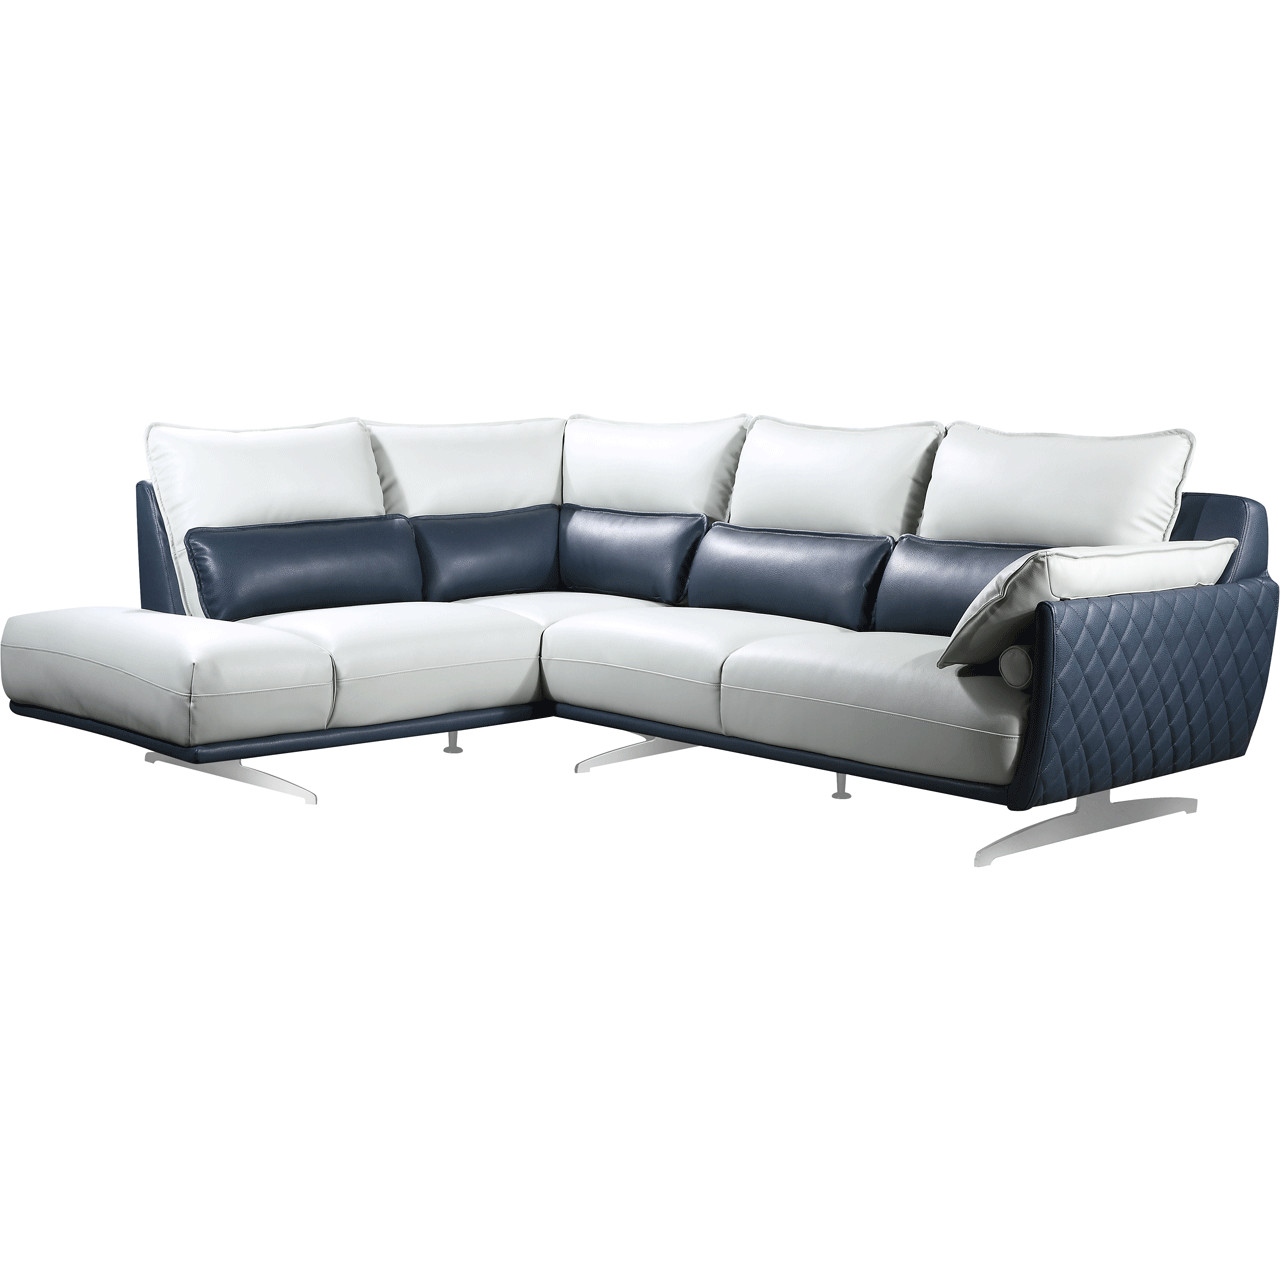 Marvelous 6311 Sectional Sofa W Left Chaise In Light Grey Royal Blue Leather By Esf Furniture Imports Cjindustries Chair Design For Home Cjindustriesco